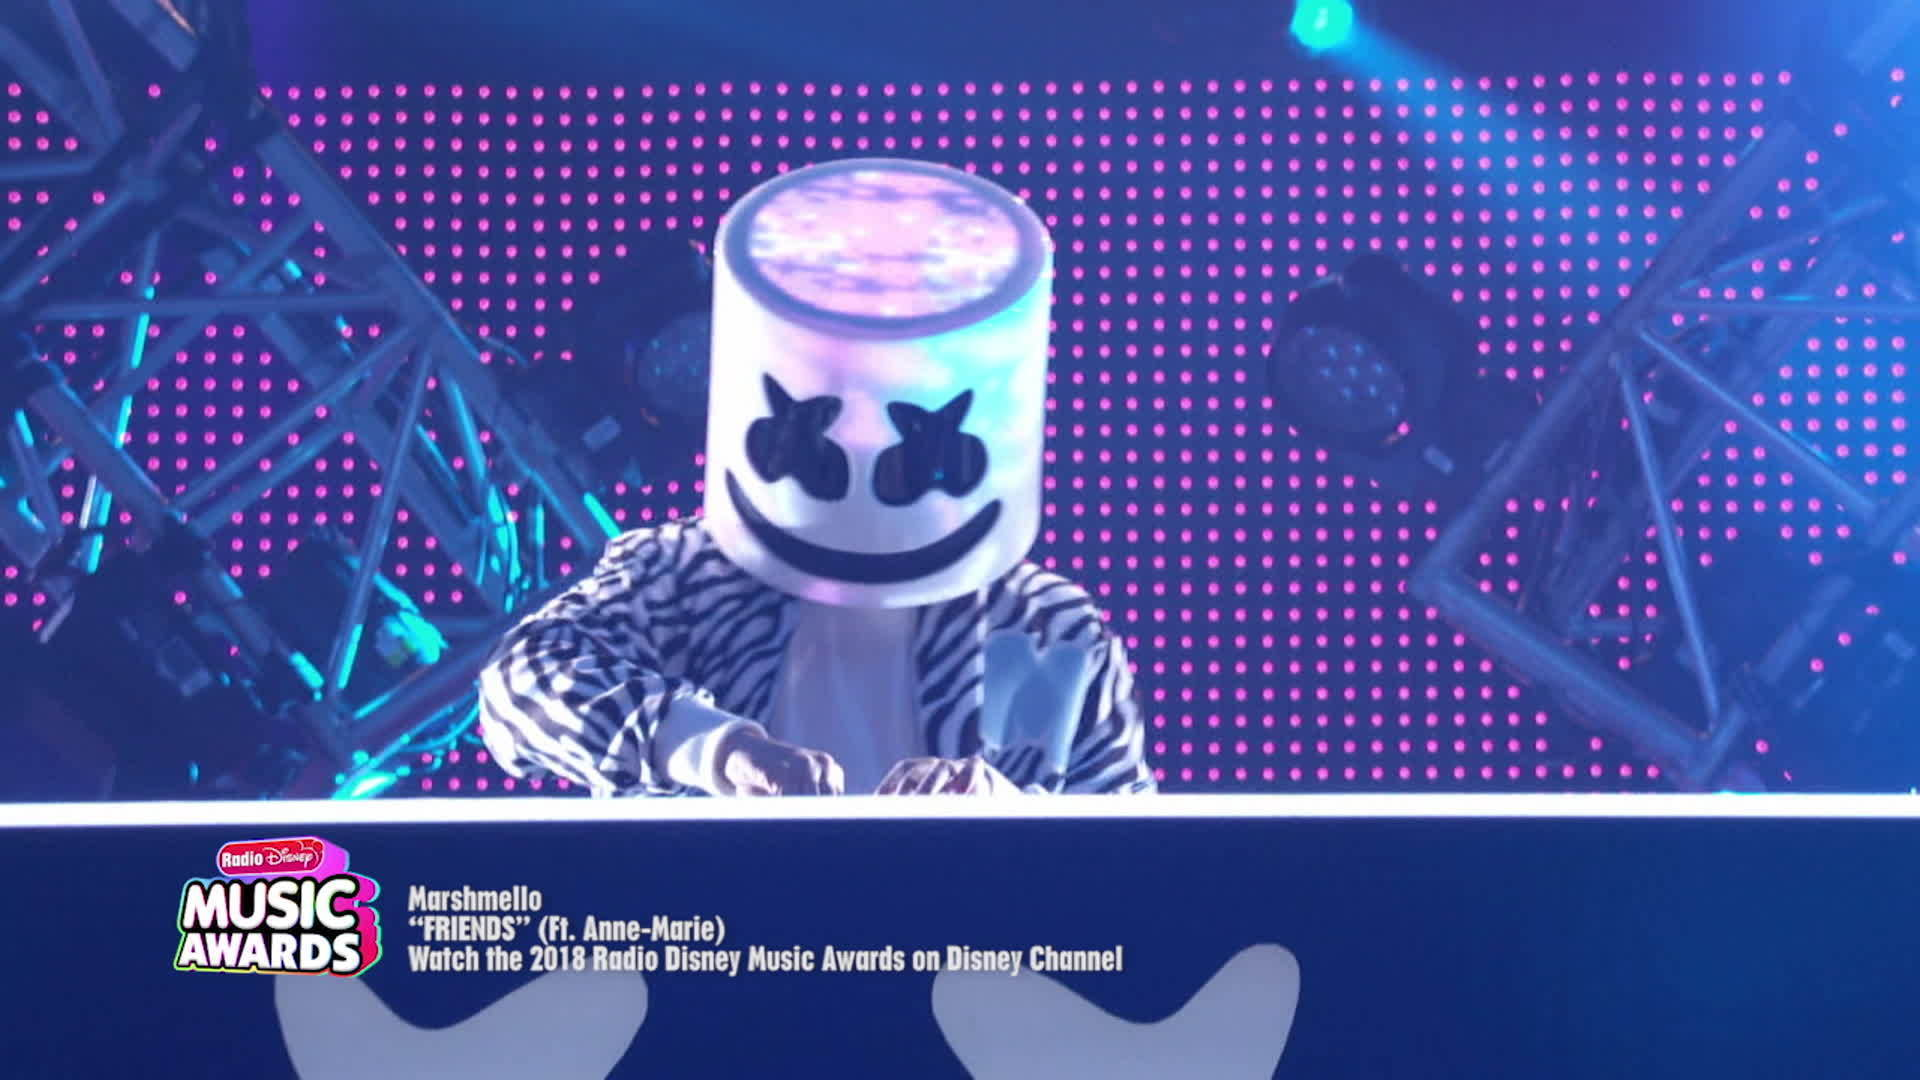 "Marshmello ""FRIENDS"" (Ft. Anne-Marie) 